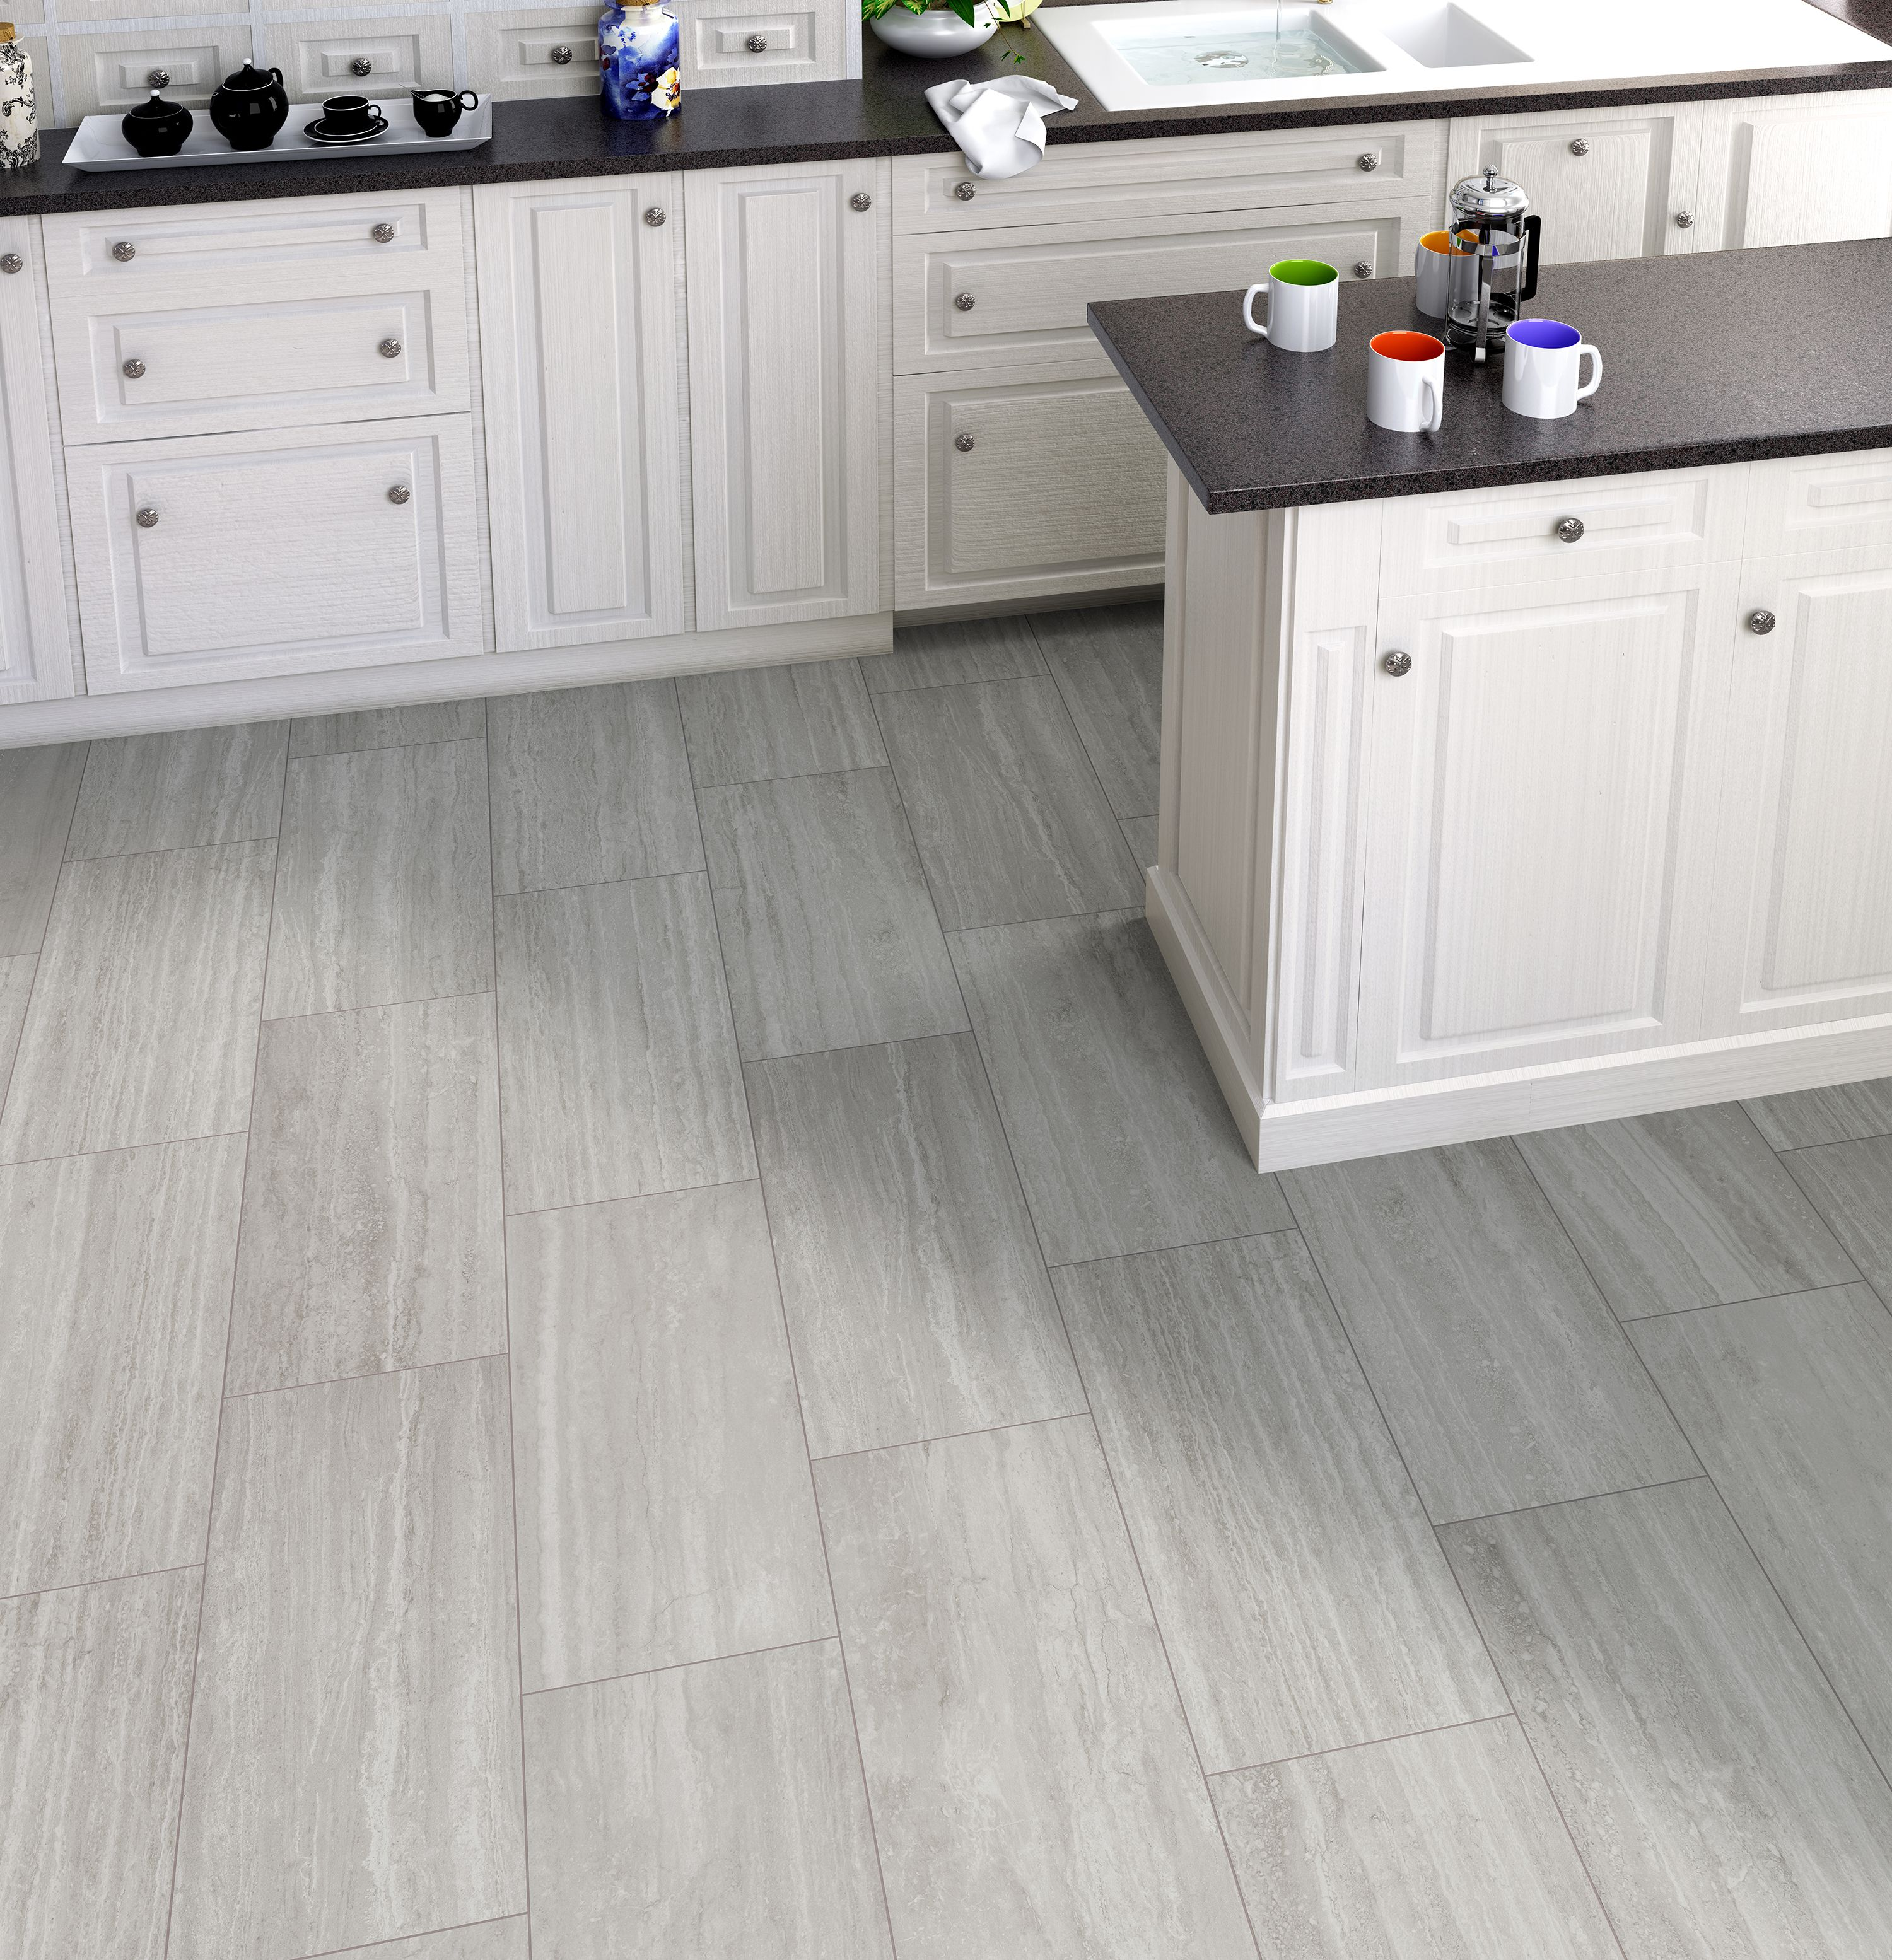 Travertine Floors In Kitchen Silver Gray Travertine Look Porcelain Tile It Matches A White